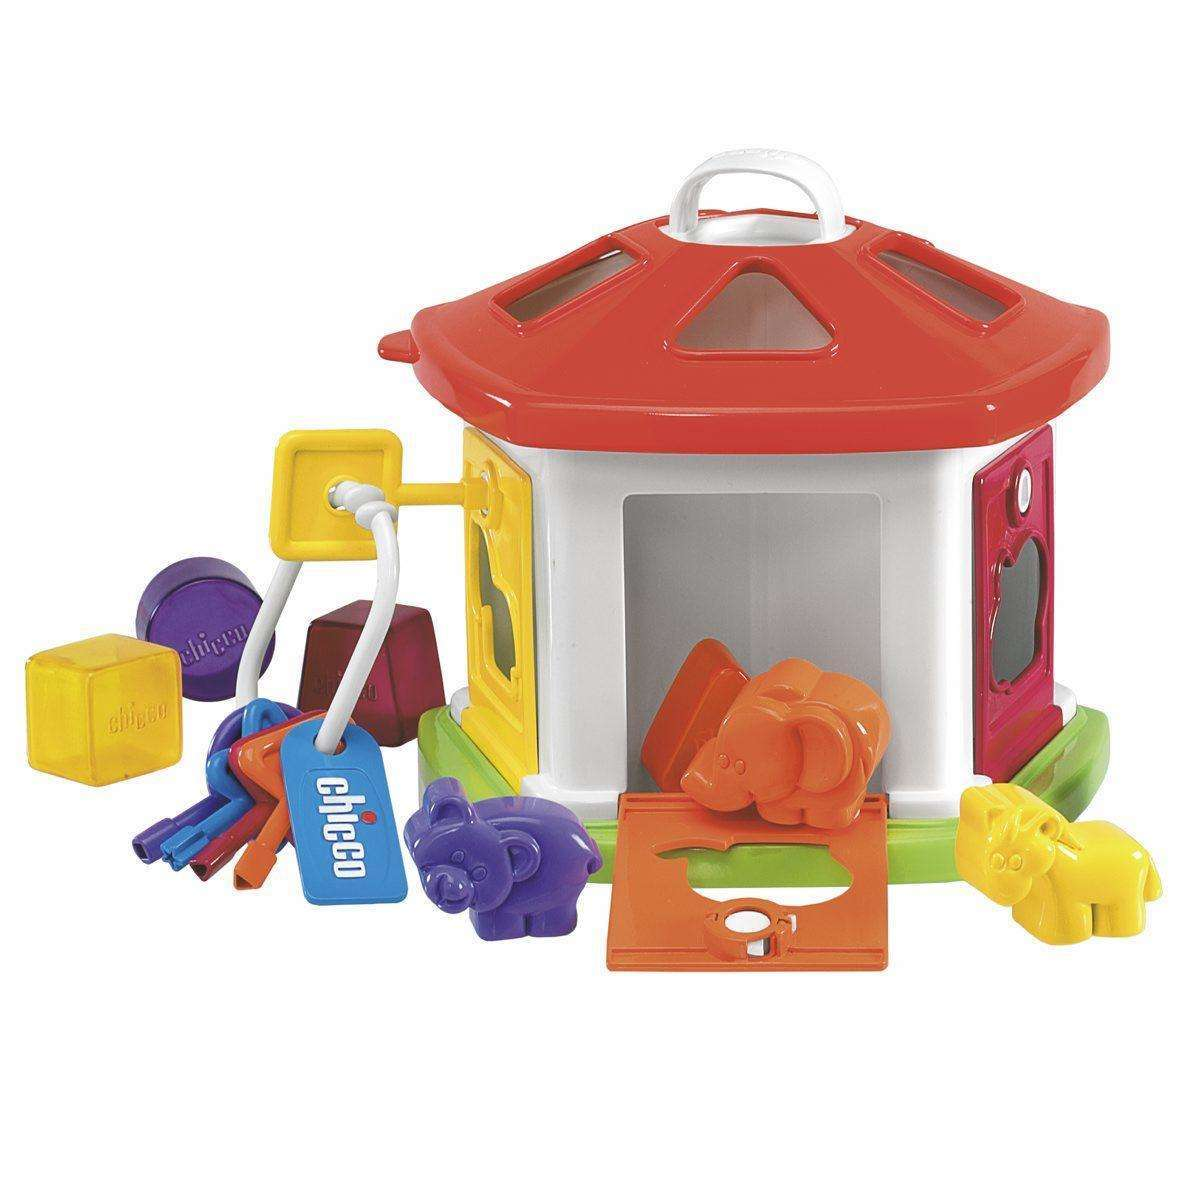 Chicco: Shape Sorter Animal Cottage image